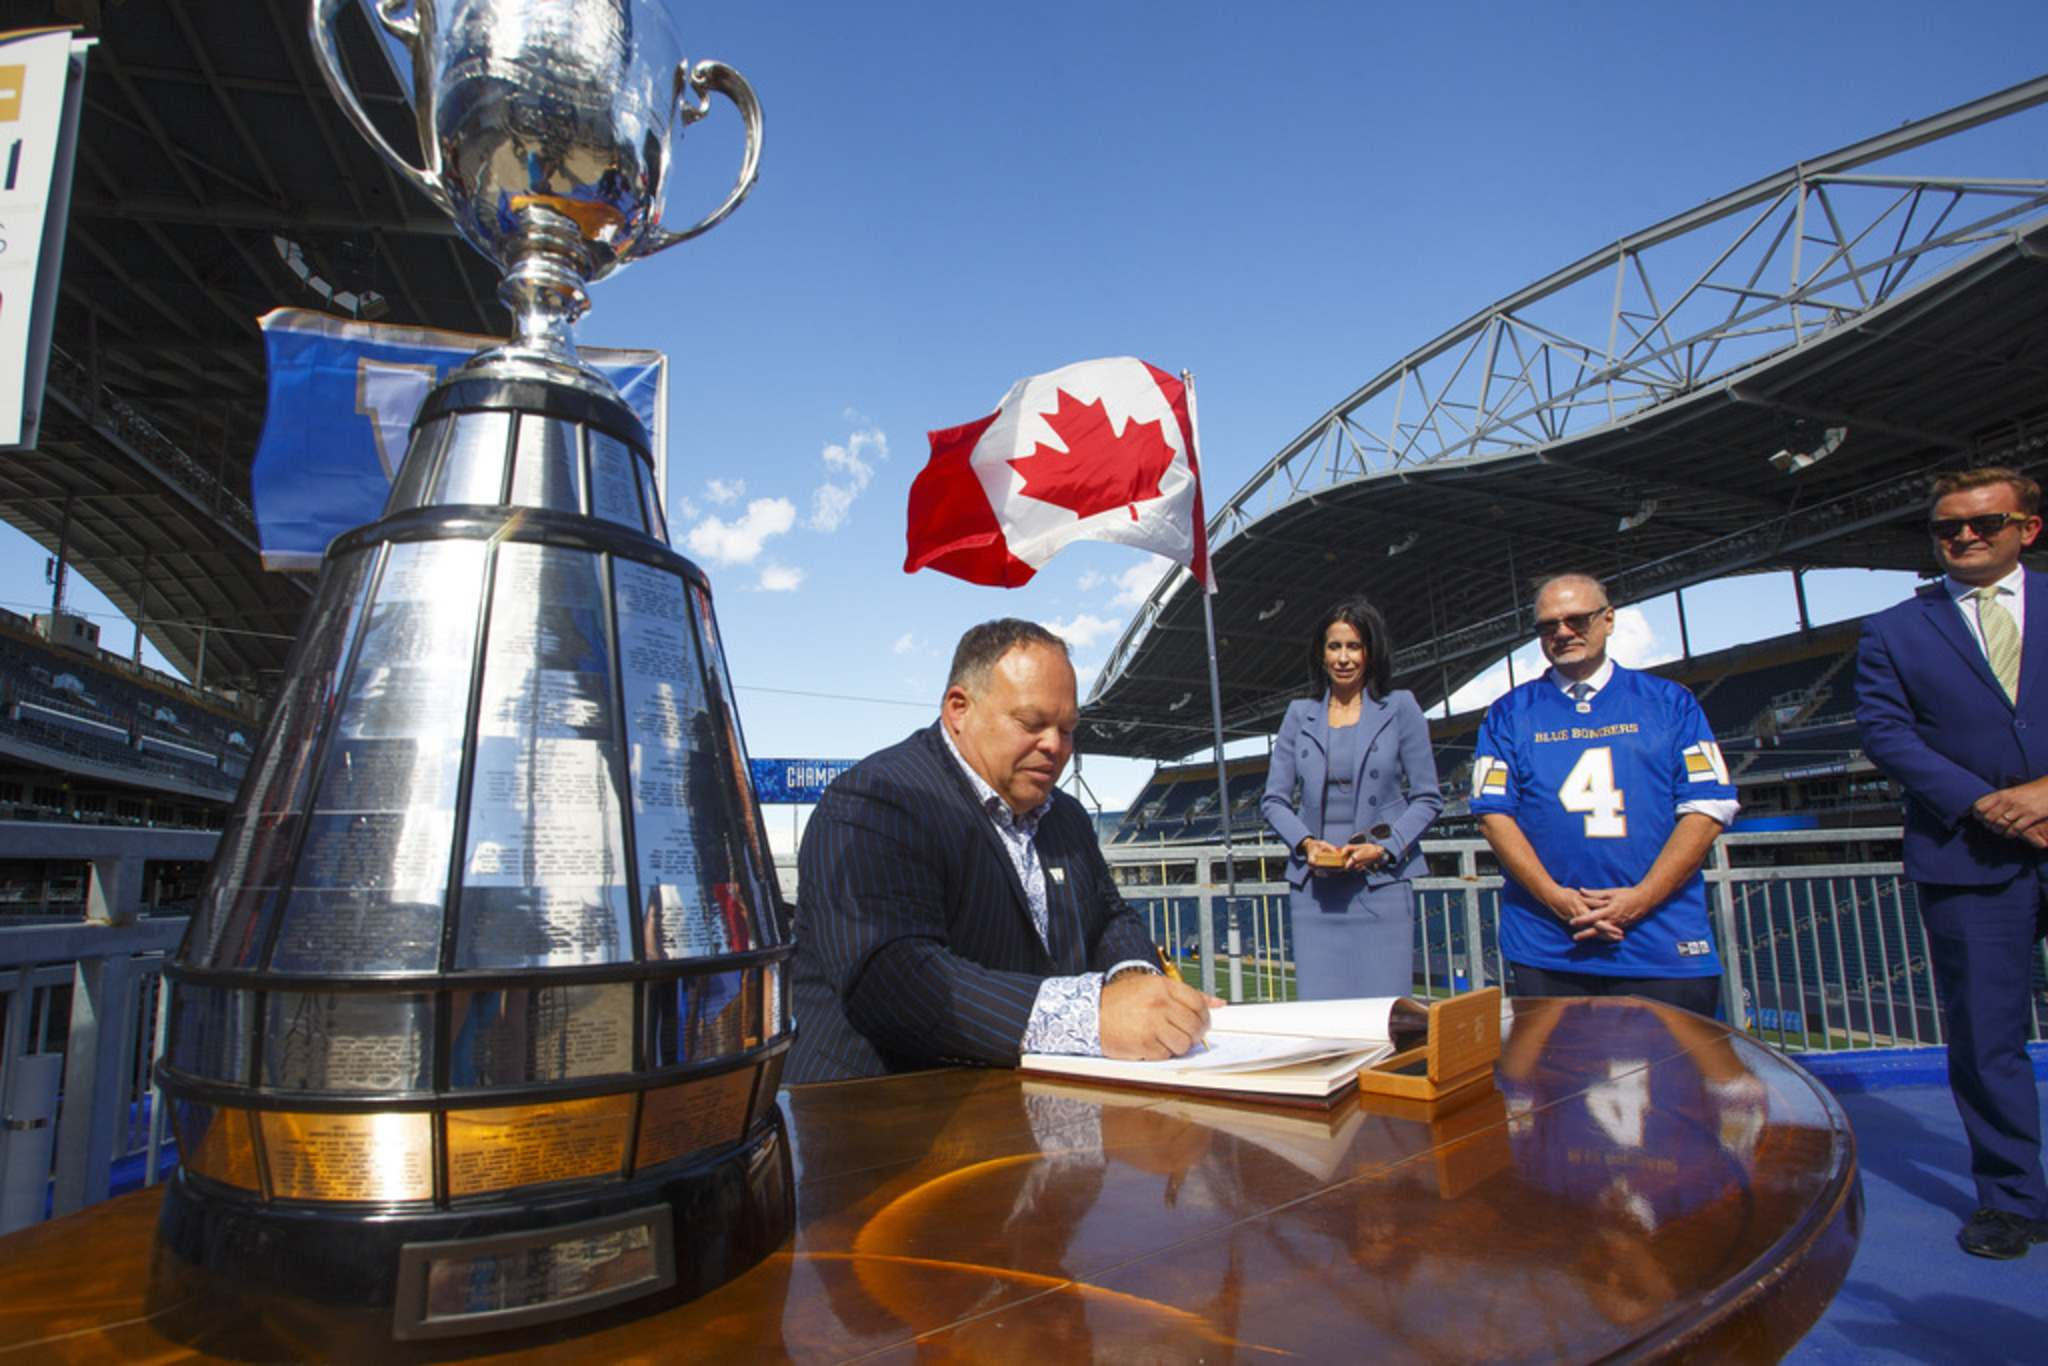 MIKE DEAL / WINNIPEG FREE PRESS</p><p>Premier Kelvin Goertzen, Wade Miller, president and CEO, Winnipeg Football Club and Dayna Spiring, chair, board of directors, Winnipeg Football Club, along with other dignitaries were on hand at IG Field Tuesday afternoon, for the signing-in of the 2019 Grey Cup Champions into the Order of the Buffalo Hunt.</p>